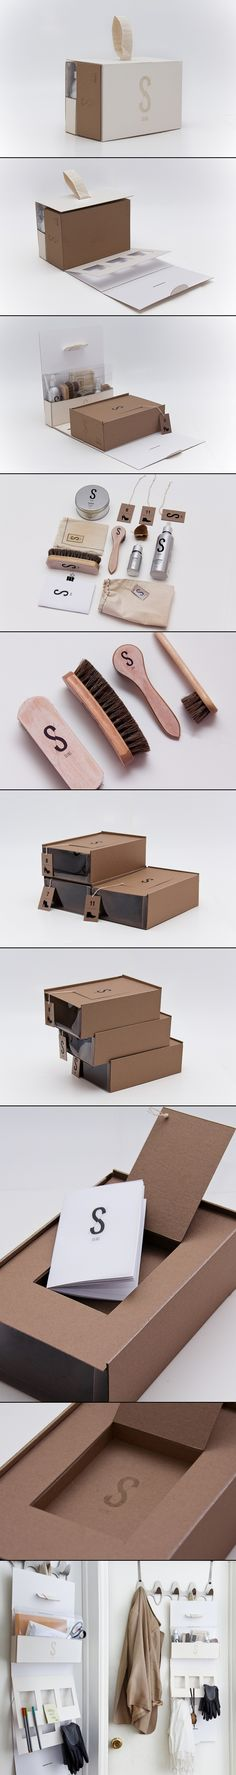 SKINS Shoe Package Design  |  Jiani Lu